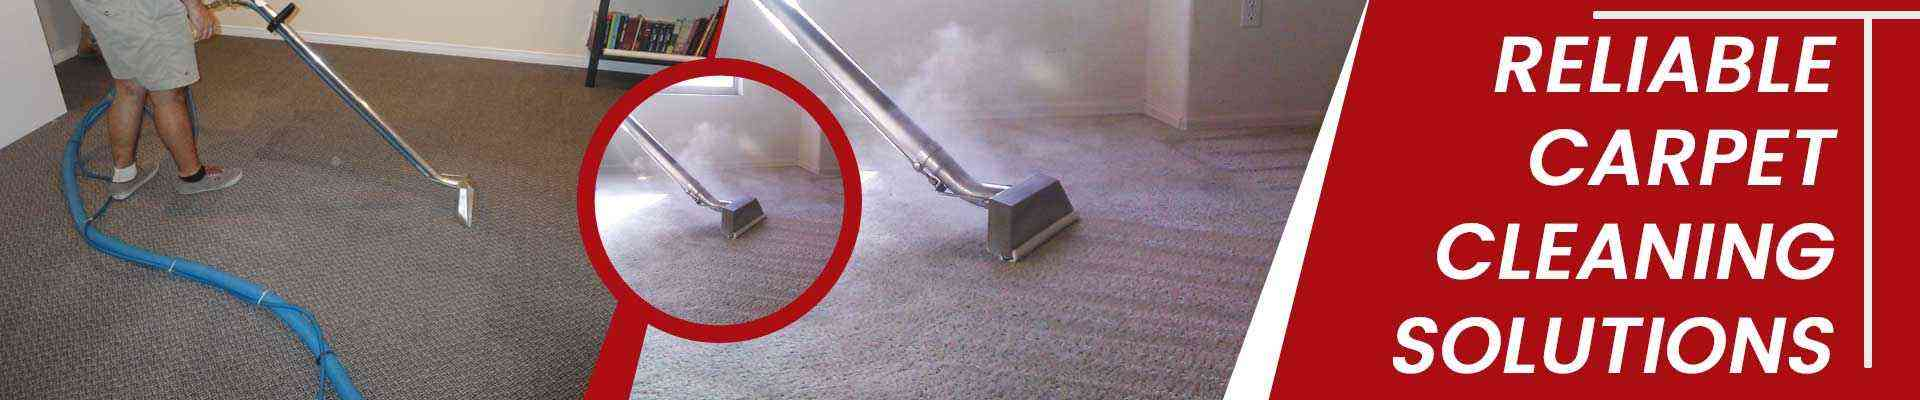 Carpet Cleaning St Andrews